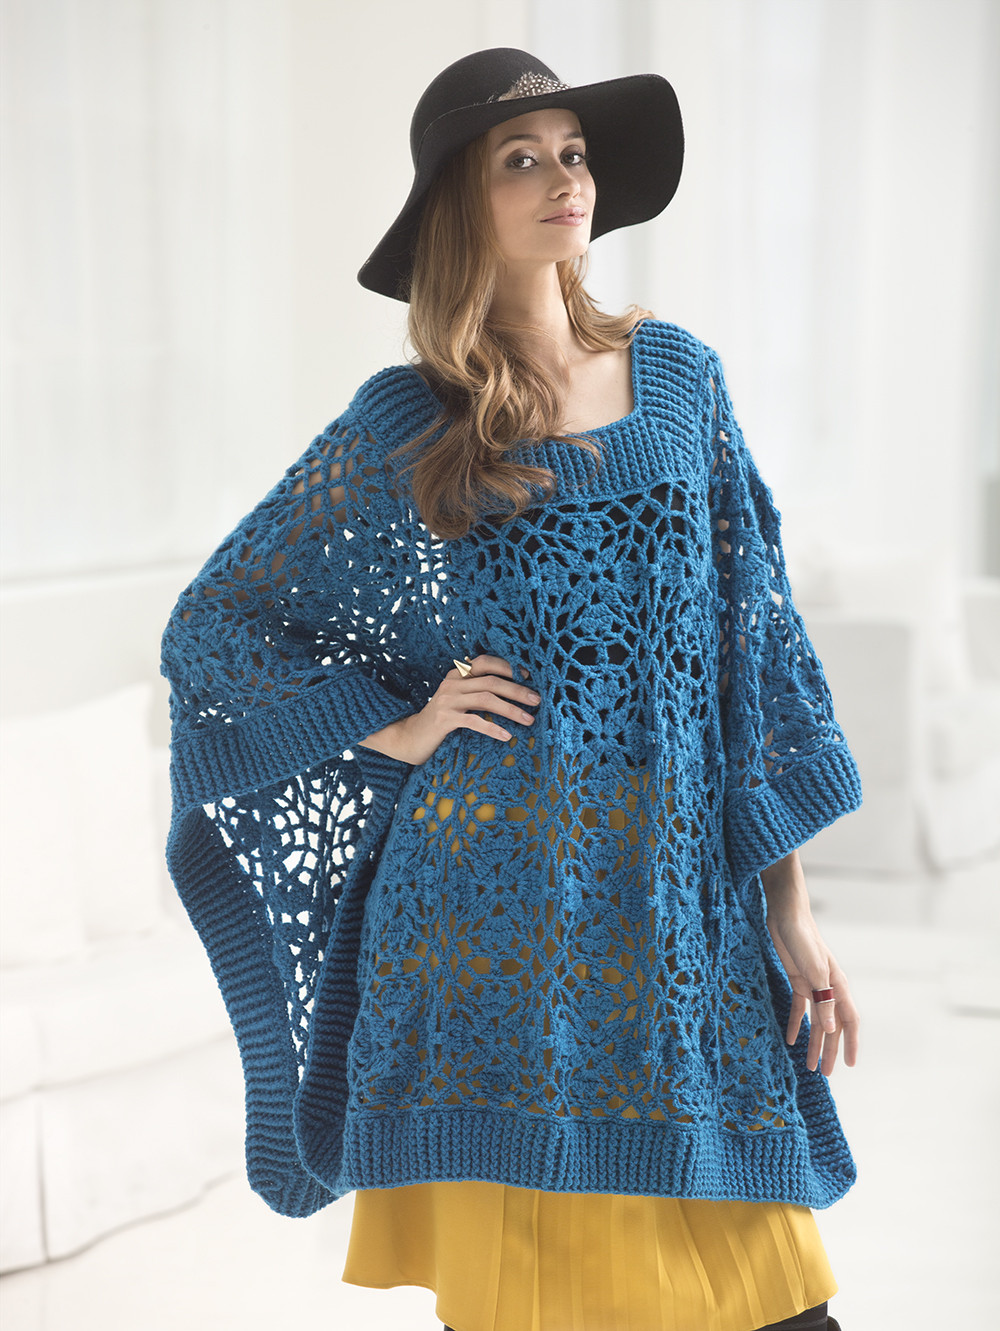 Poncho Crochet Pattern Best Of Our Favorite Crochet Sweater Kits for Mom and Baby Of Attractive 42 Ideas Poncho Crochet Pattern